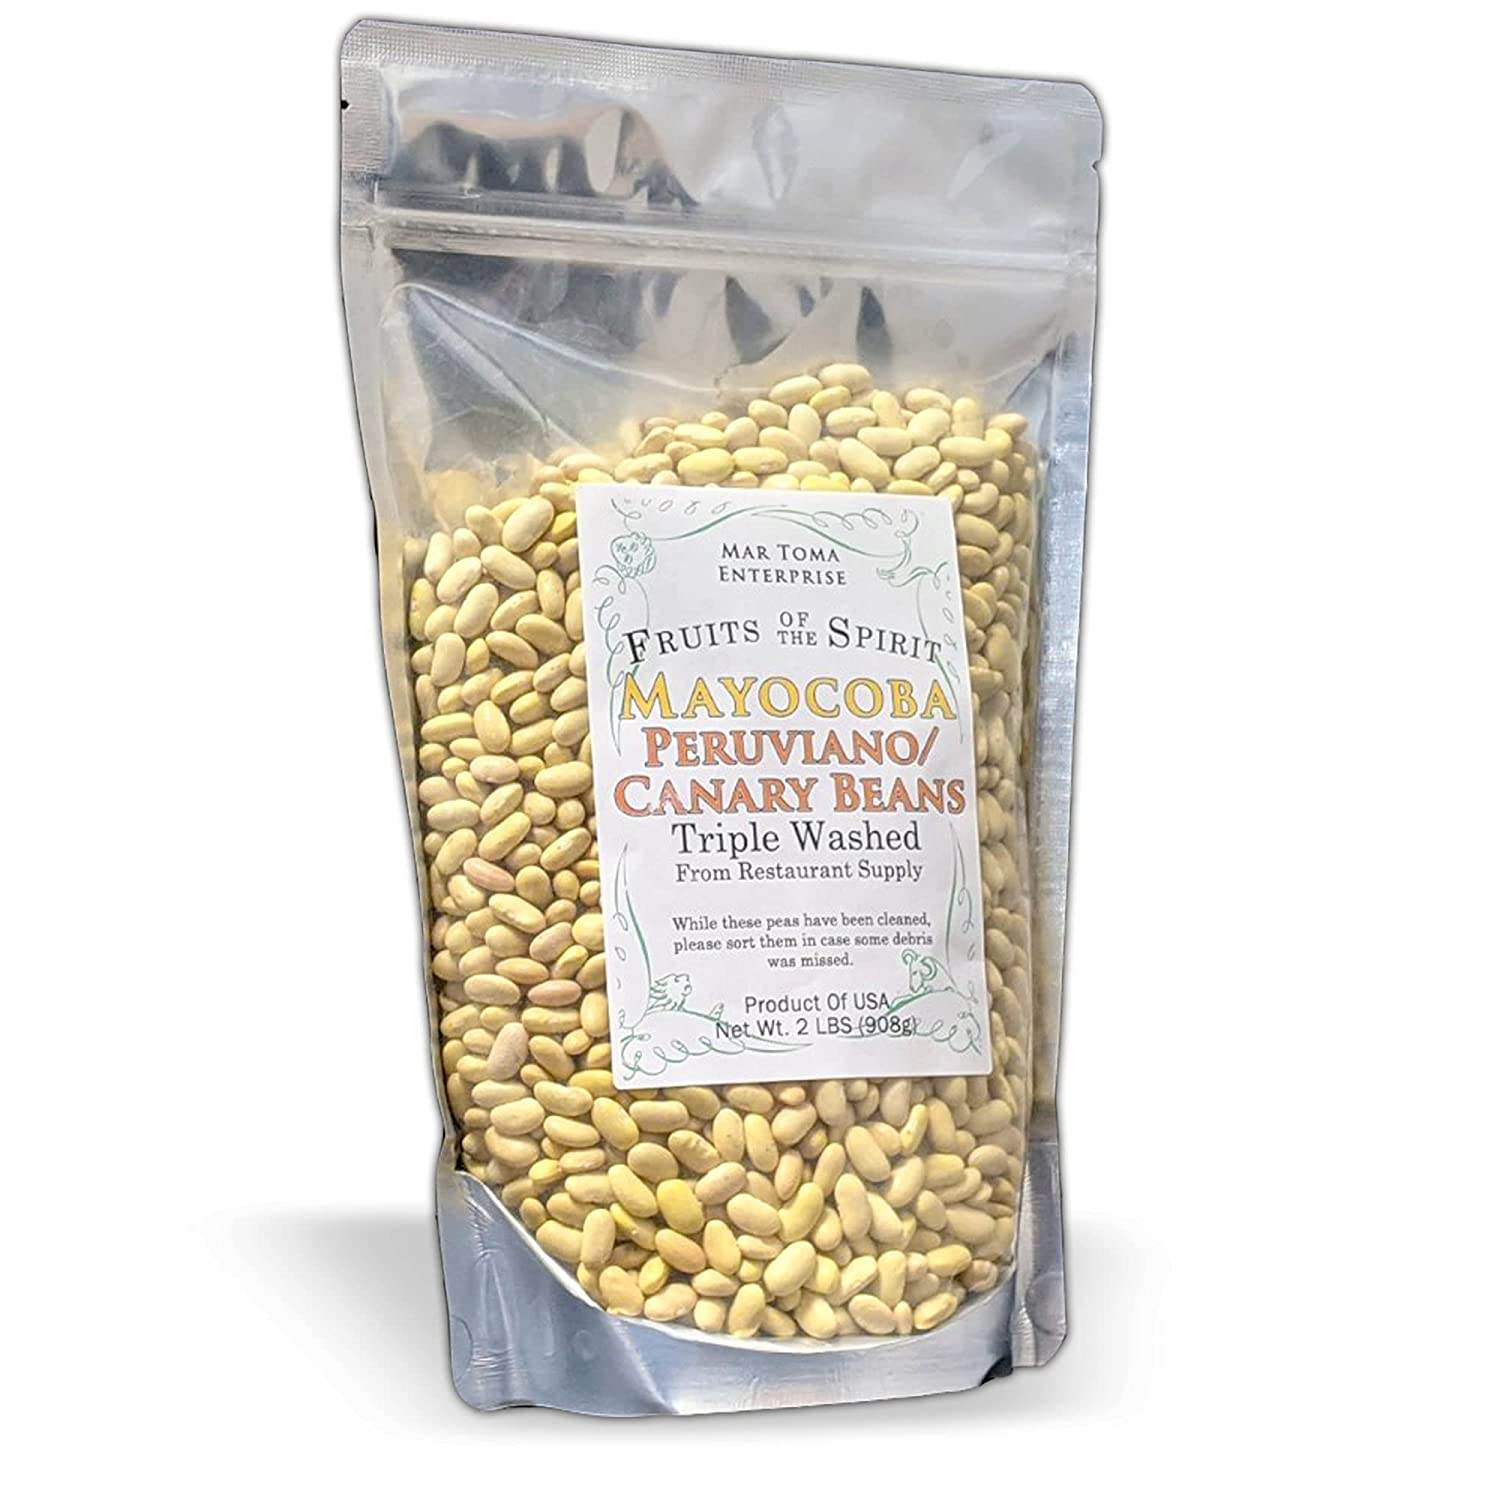 FOTS Dry Canary Peruviano Mayoboca Beans- Bag Pound x Max 86% OFF Clea 3 Super-cheap 2